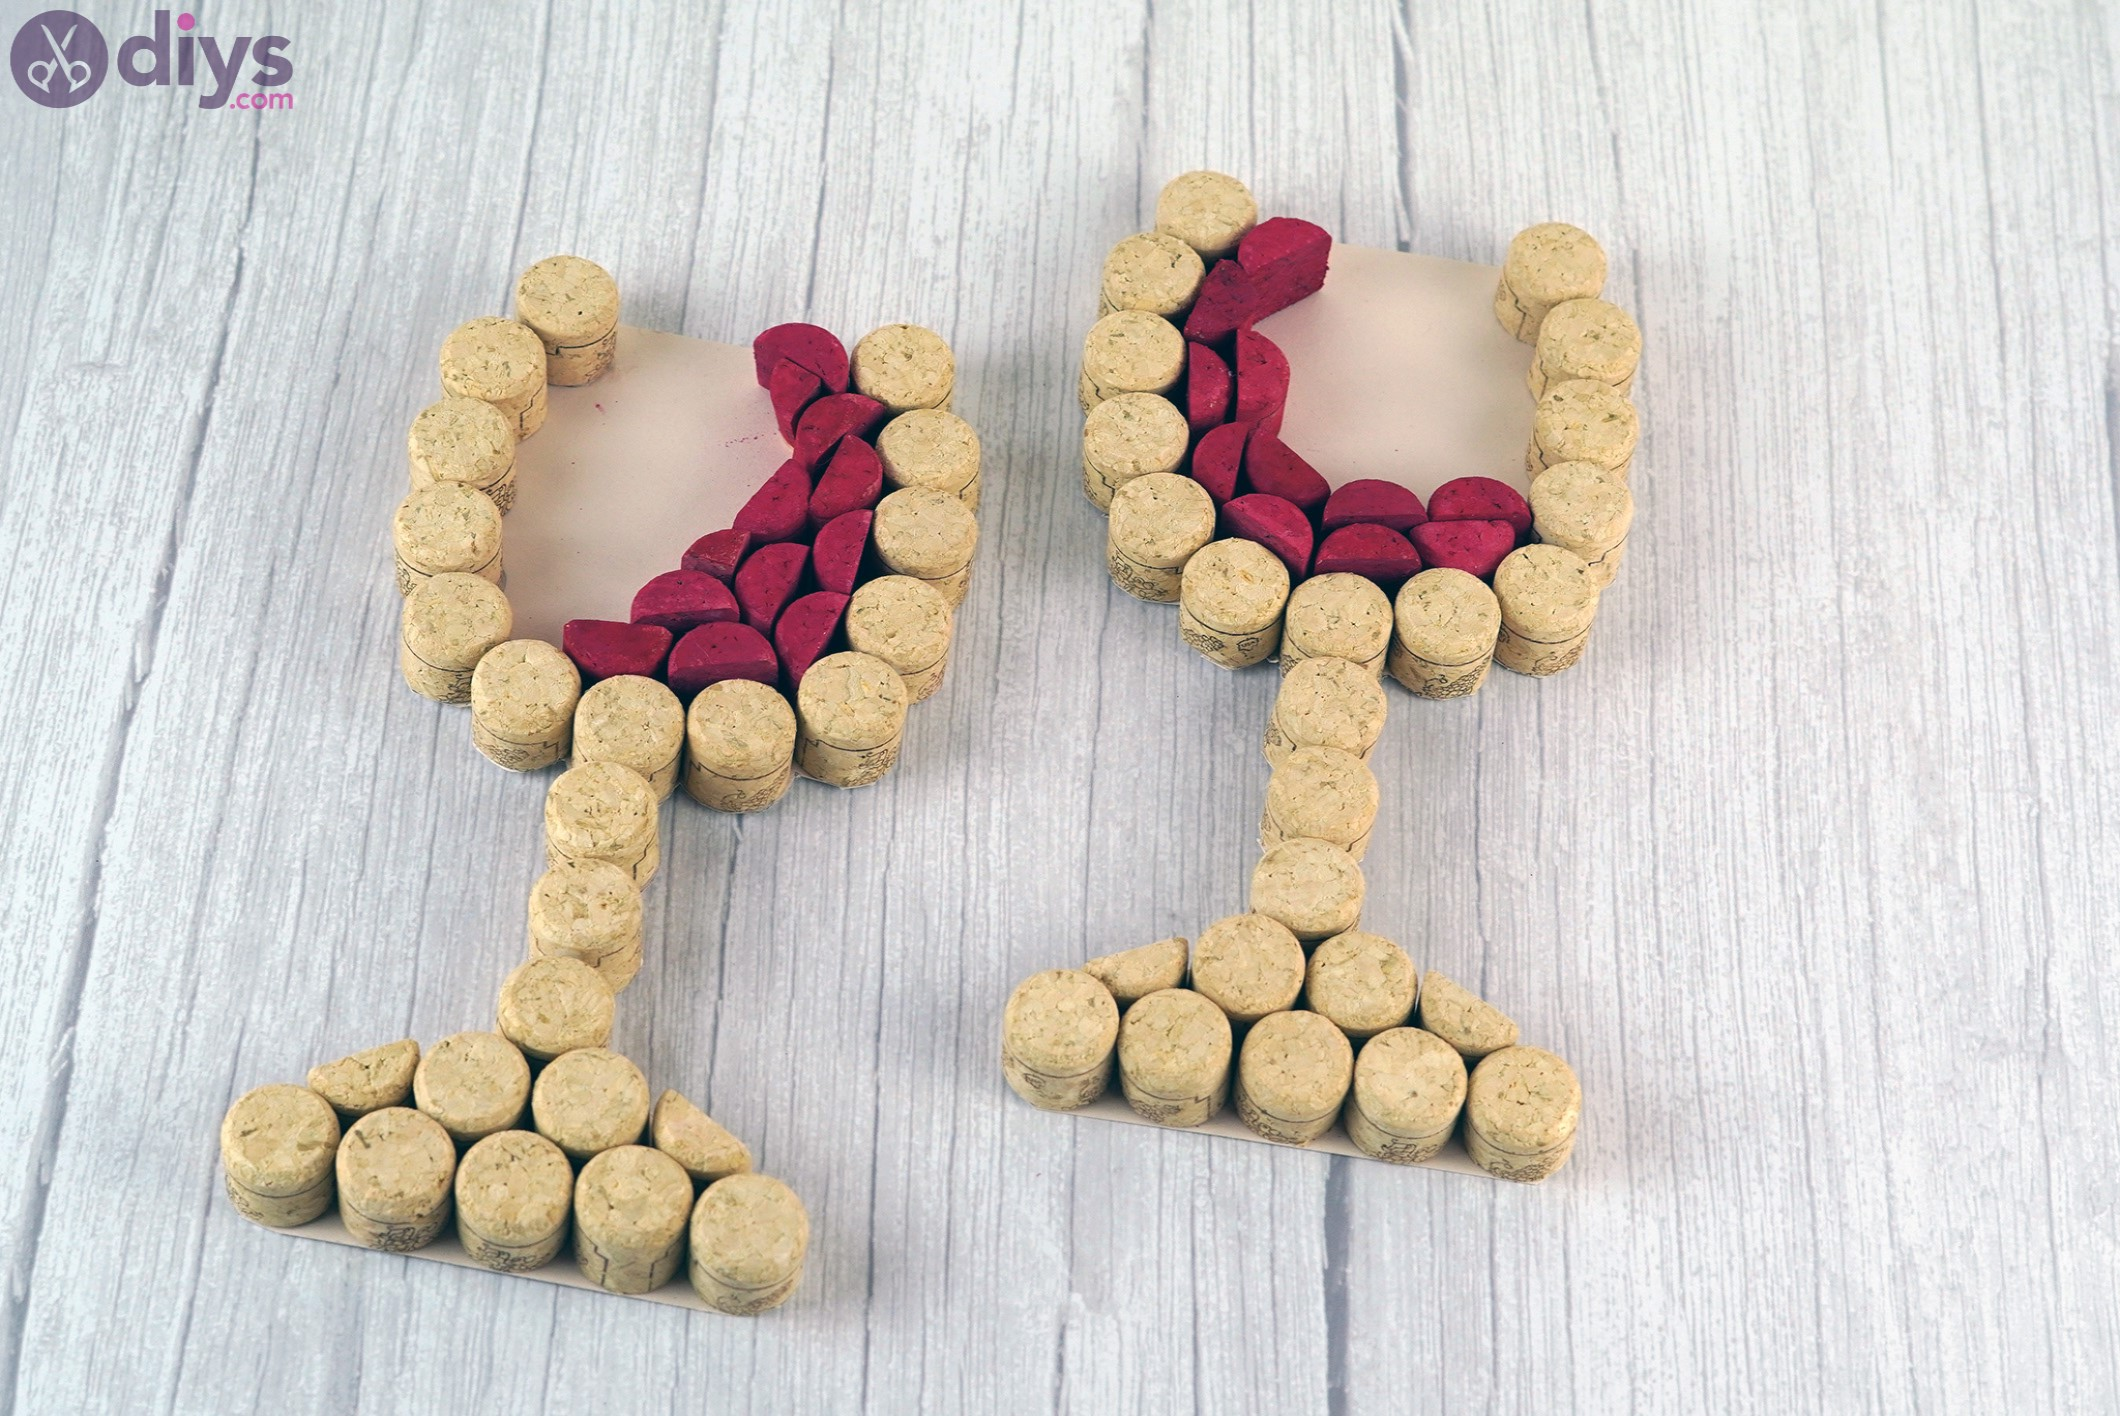 Wine cork wine glasses